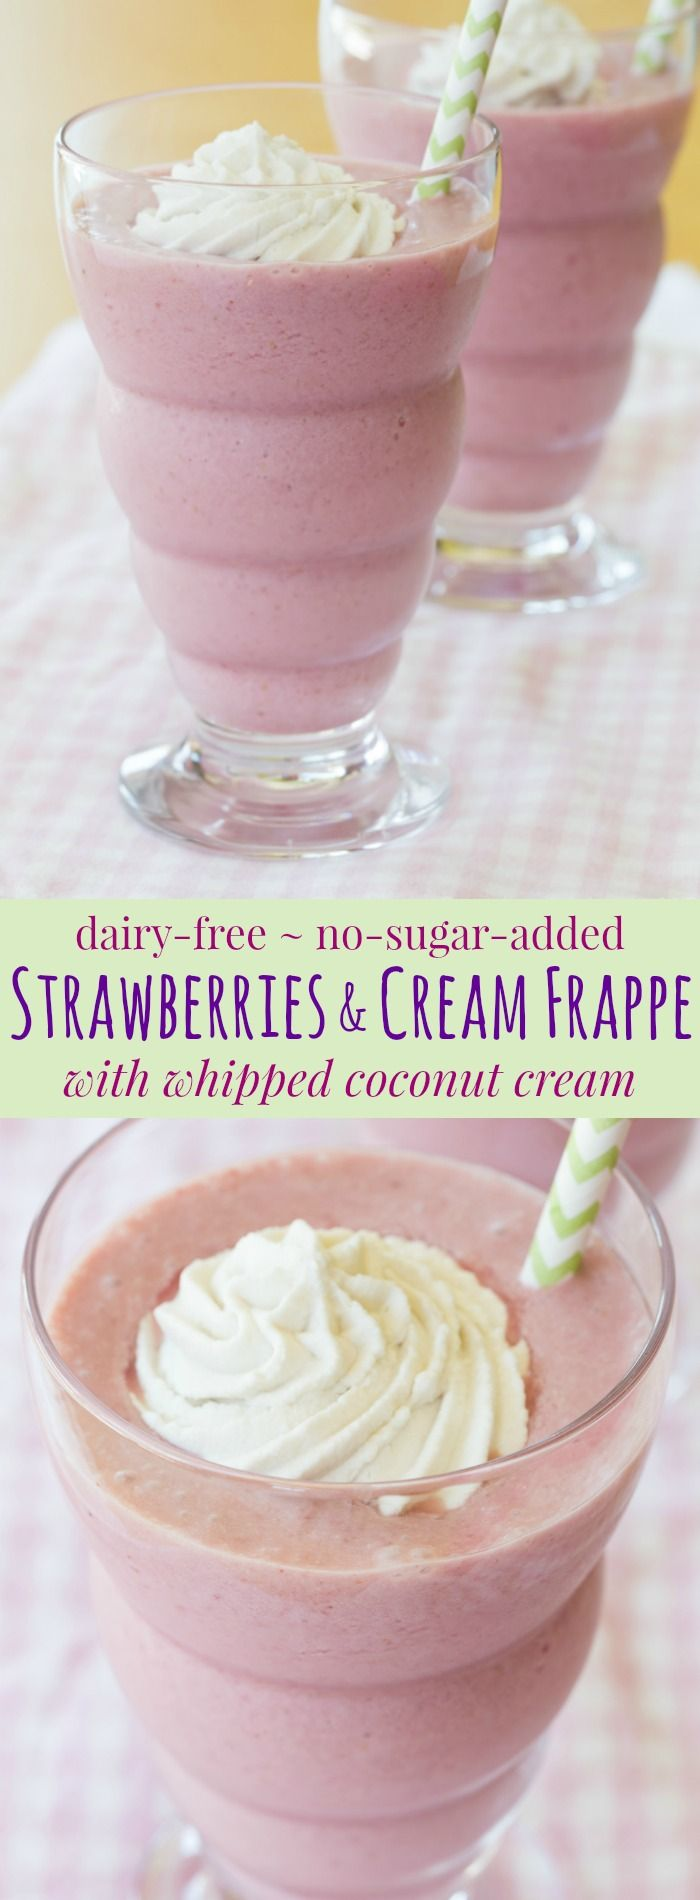 Strawberries and Cream Frappe with Whipped Coconut Cream - a healthier alternative to those fruity frozen drinks from your favorite coffee shop made without added sugar thanks to @wholesomesweet Stevia. #ad